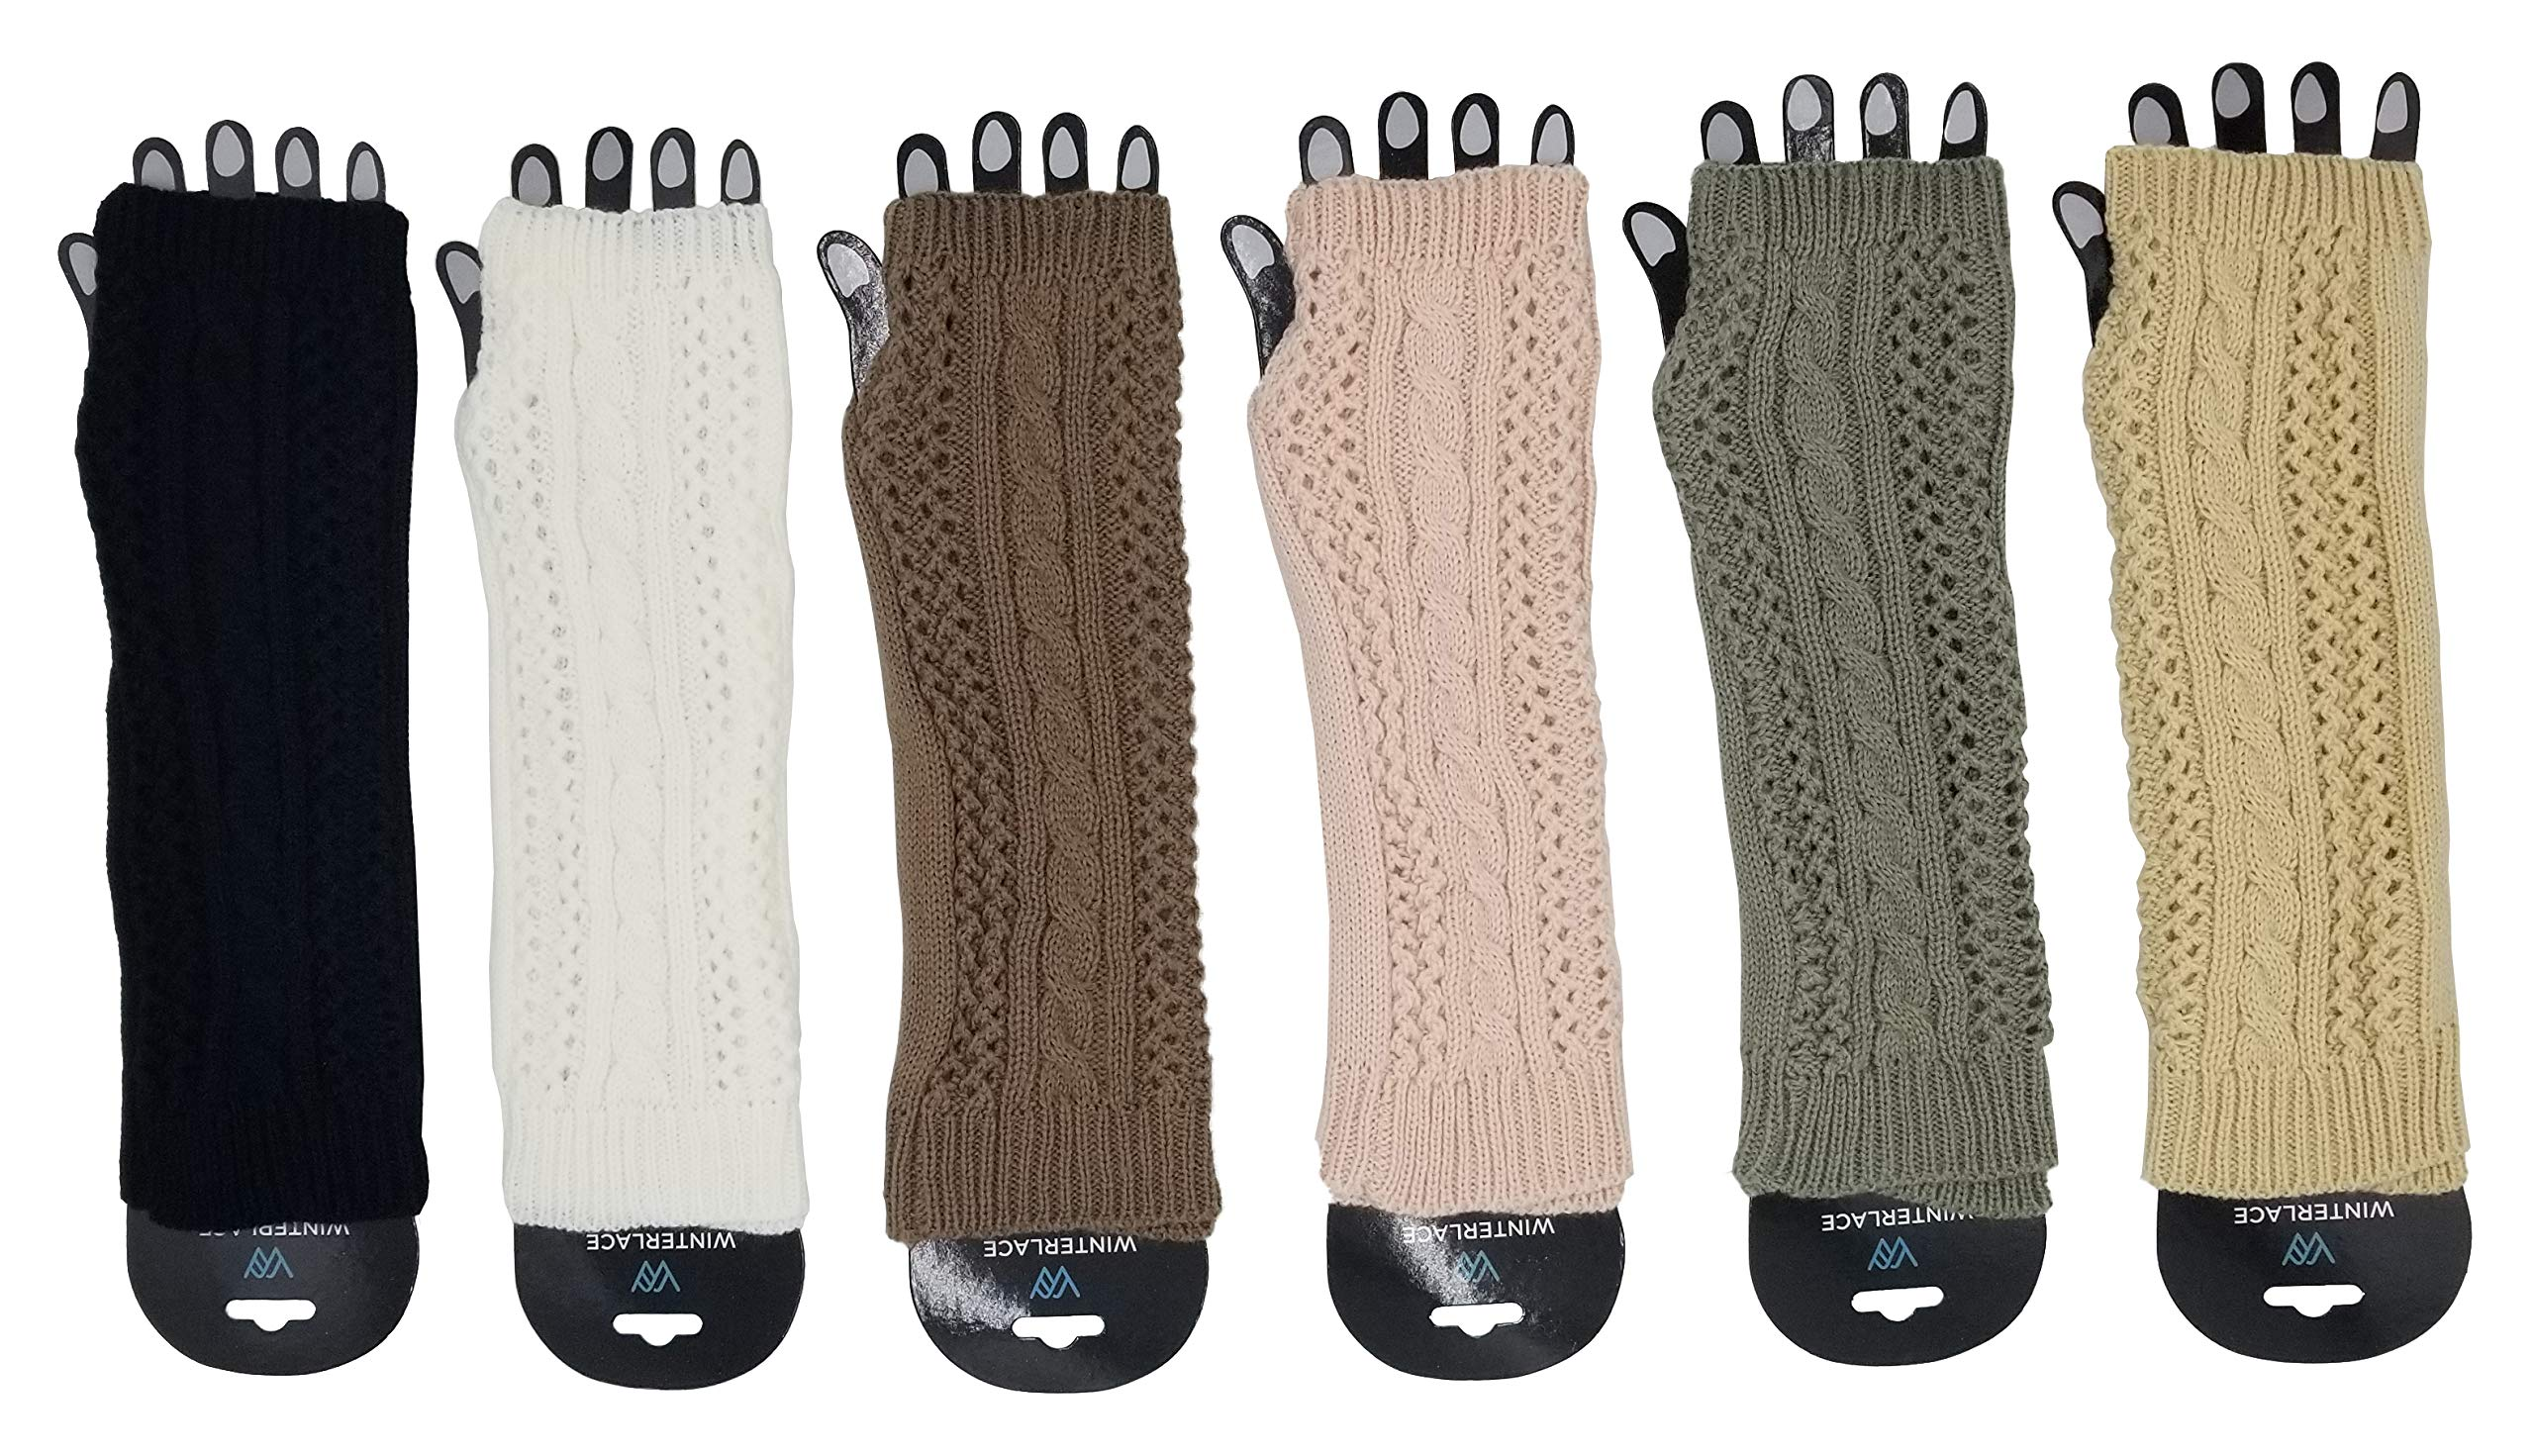 Arm Warmers, 6 Pairs for Women, Cable Knit Warm Winter Sleeve Fingerless Gloves, Premium Gift (Assorted A)